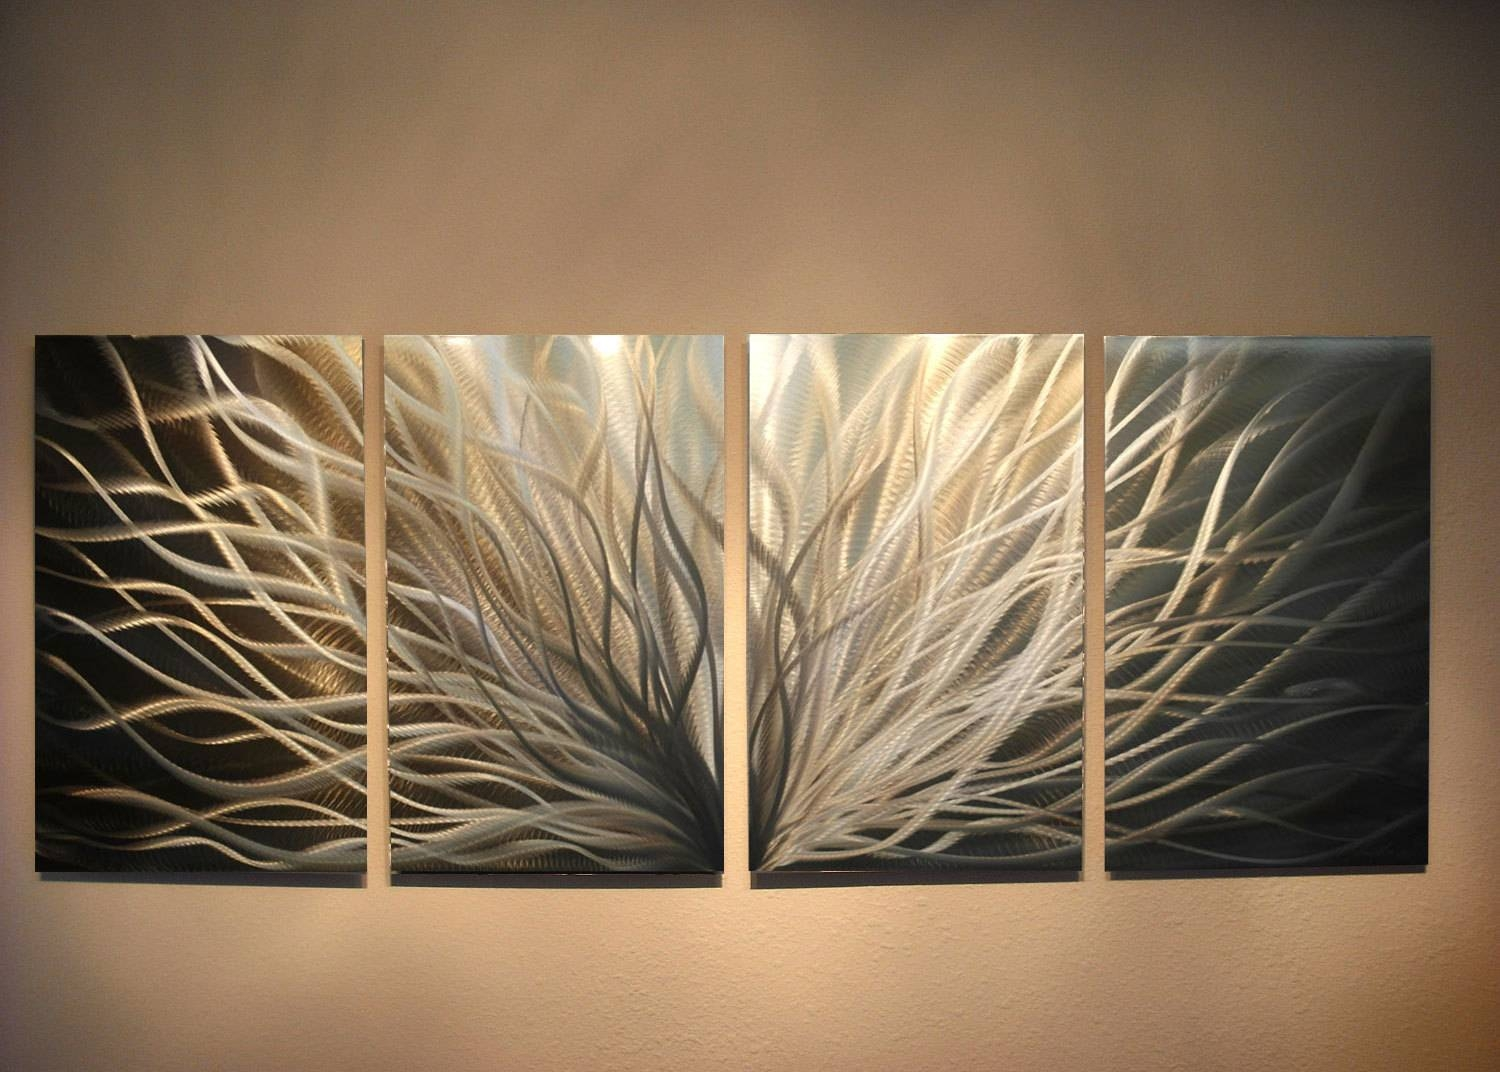 Metal Art Wall Art Decor Aluminum Abstract Contemporary Modern Intended For Current Abstract Metal Wall Art (View 11 of 20)